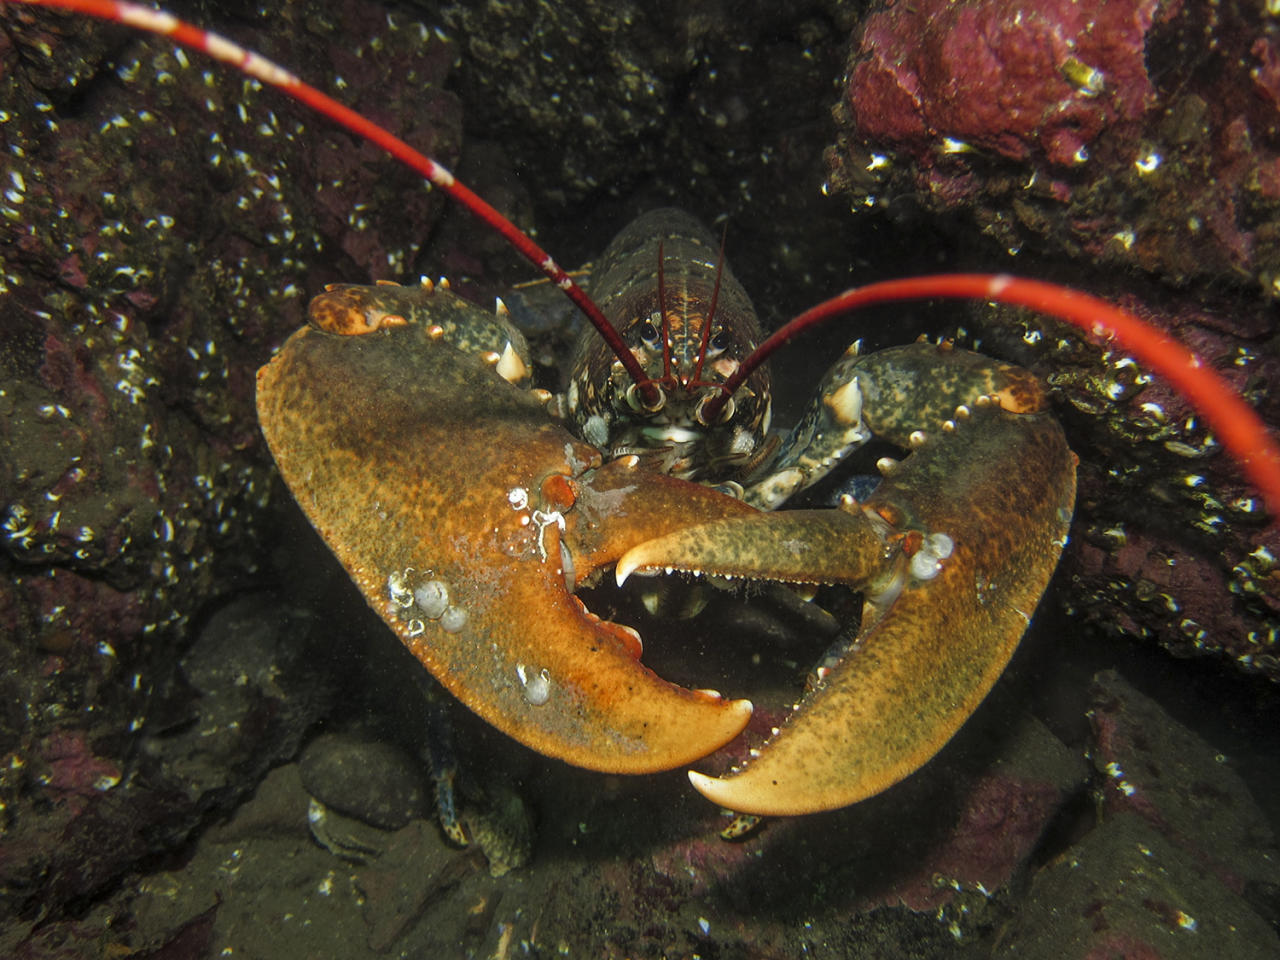 <p>Paula Bailey snapped this picture of a lobster while diving at St Abbs in the UK (Picture: Paula Bailey/UPY 2017) </p>